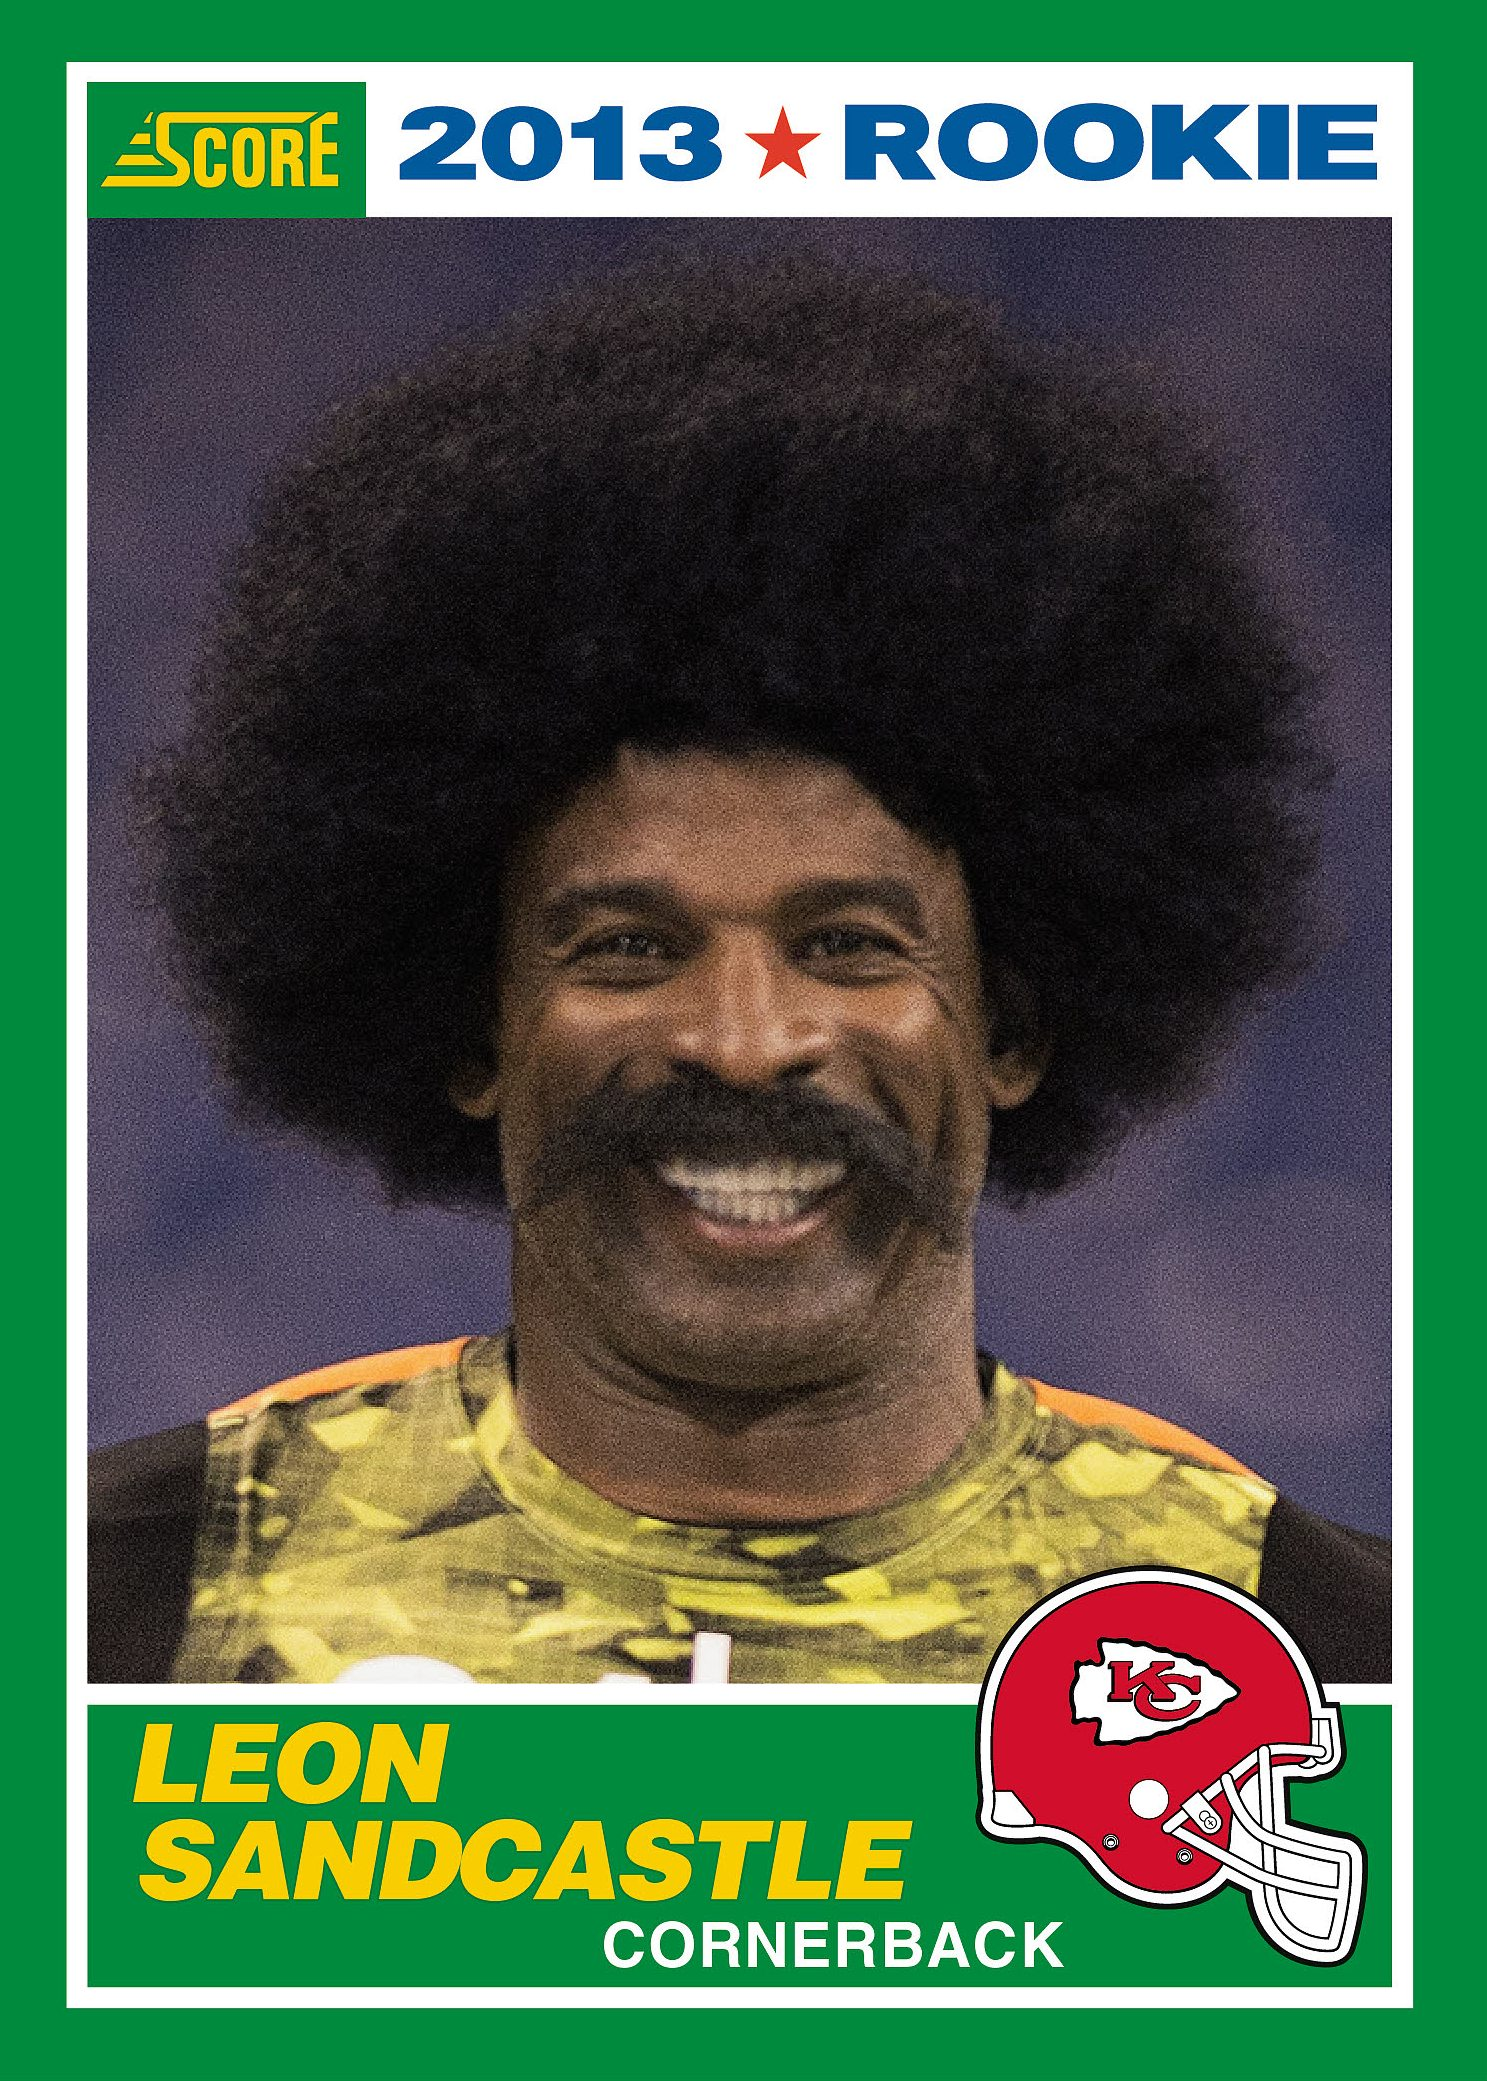 Panini America to Produce Leon Sandcastle Rookie Cards for